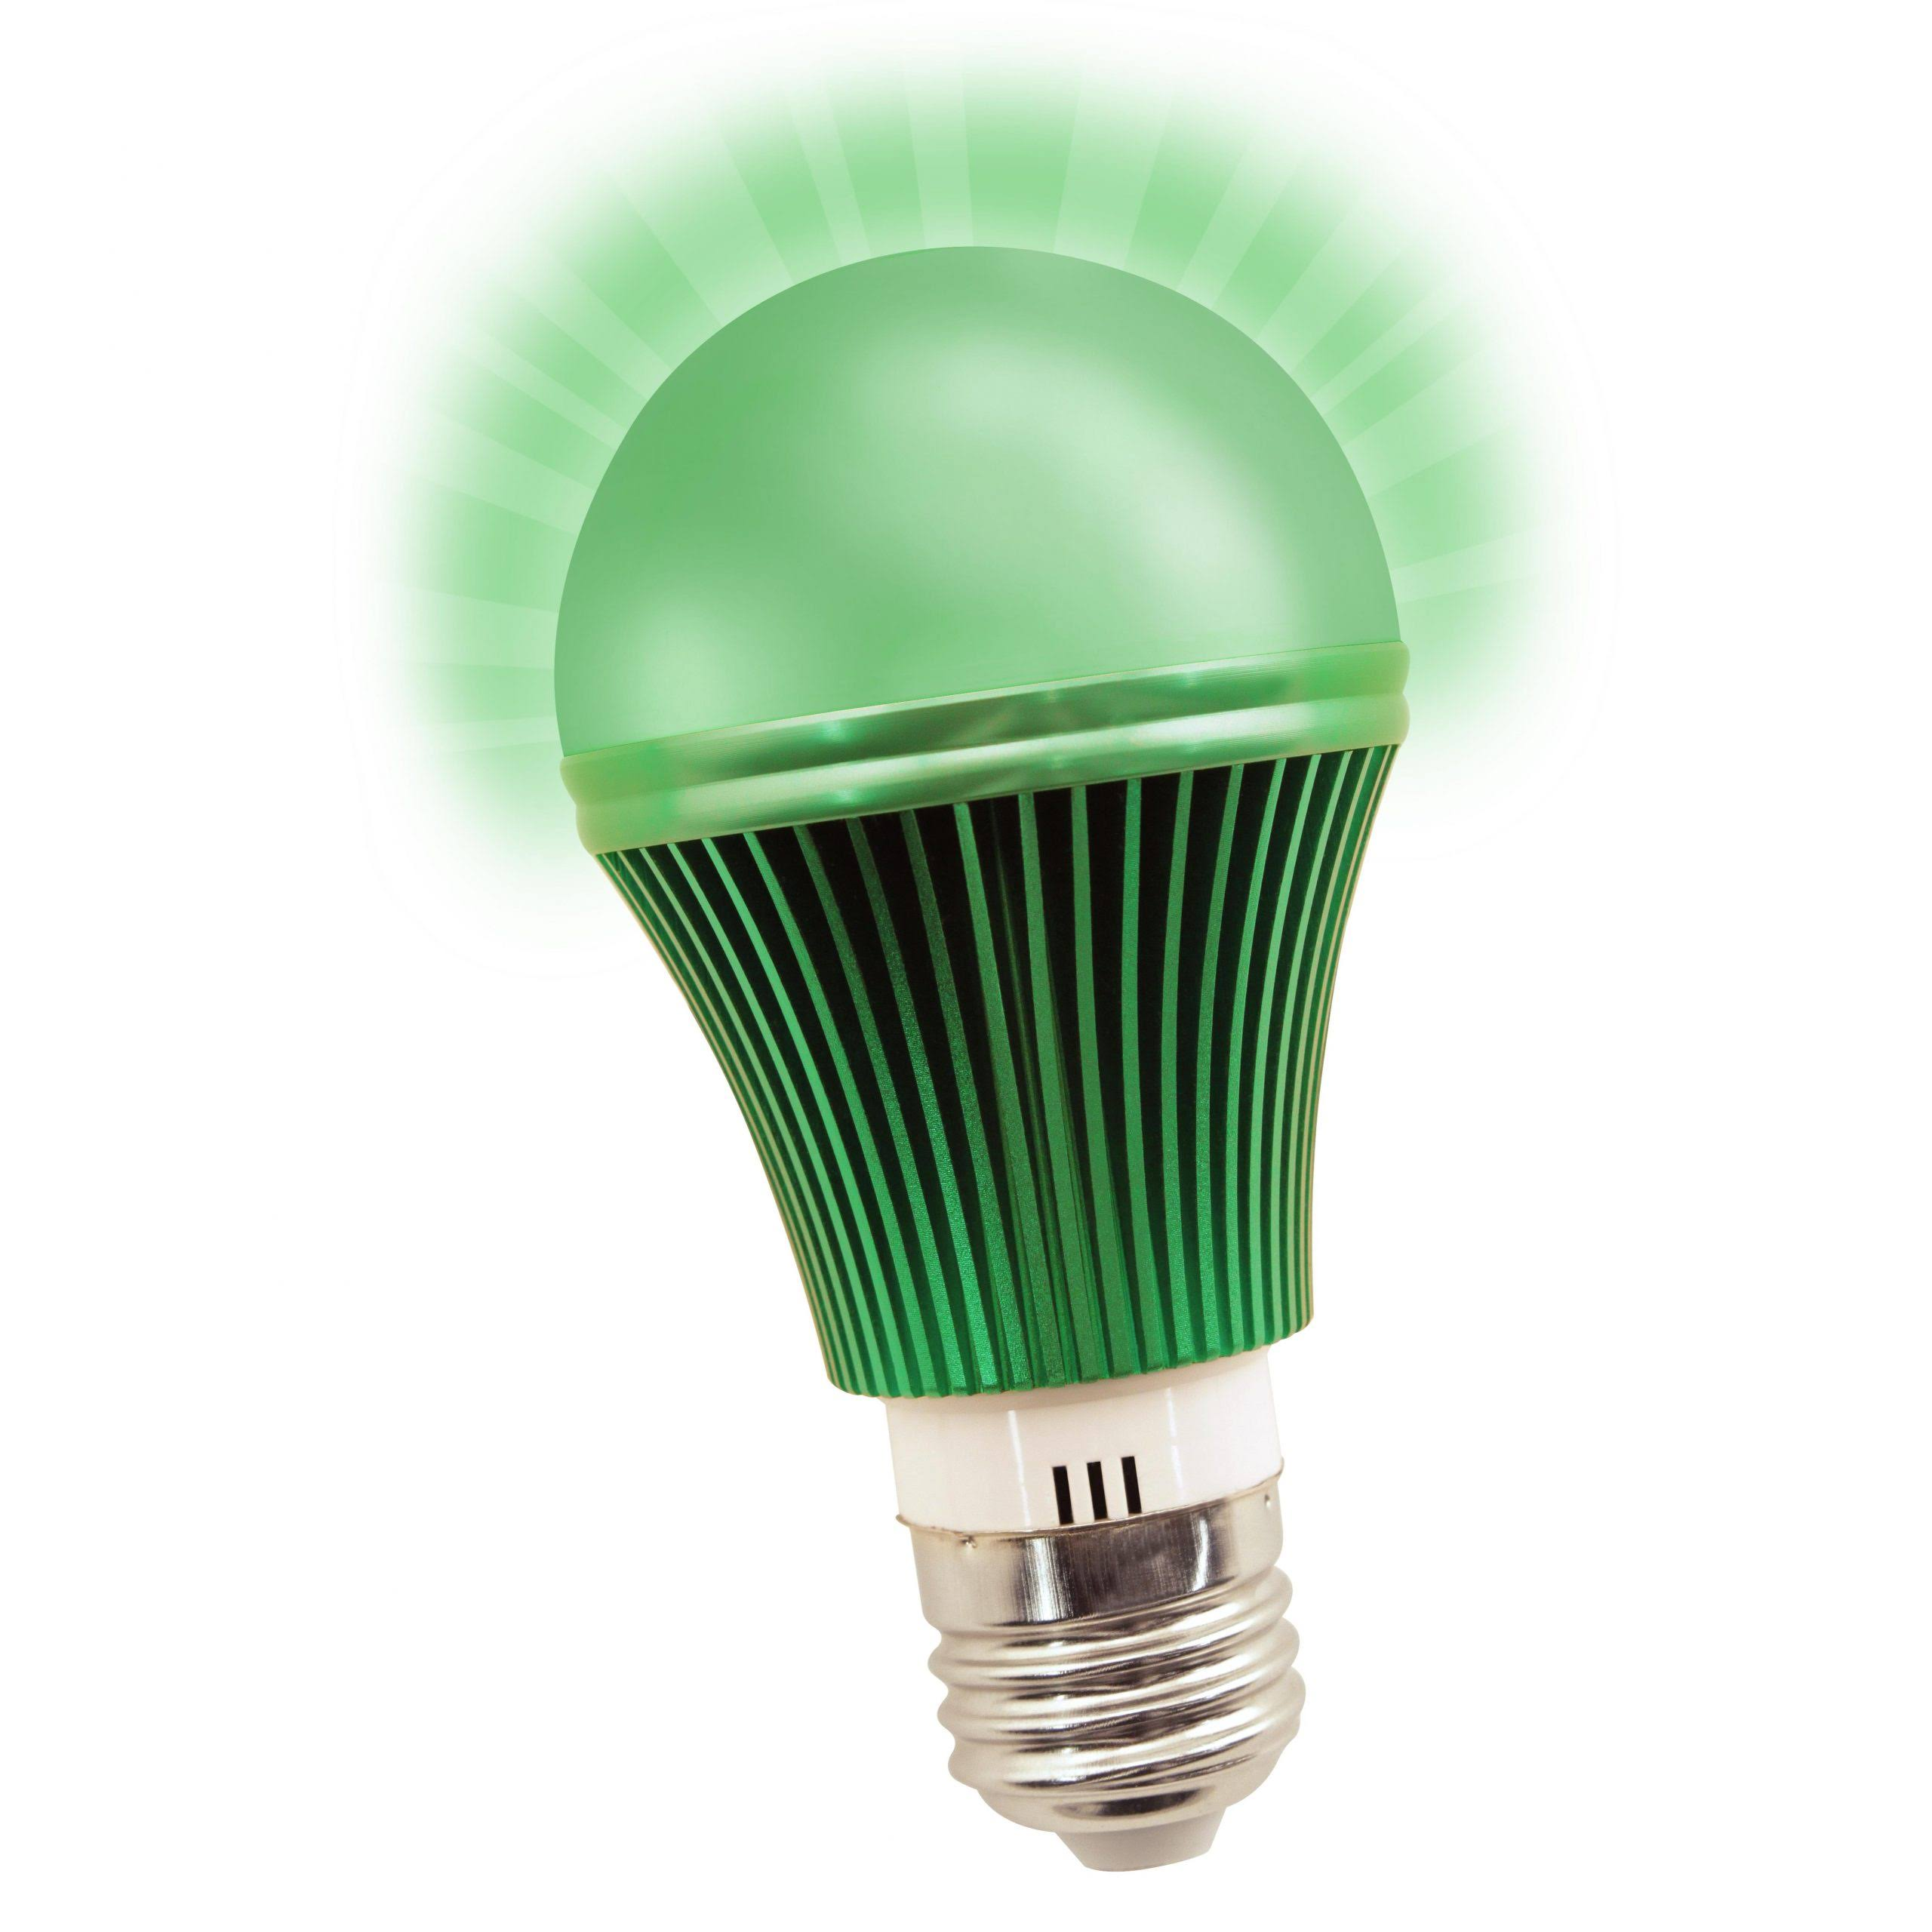 AgroLED 960417 Green LED Night Light-6 Watt